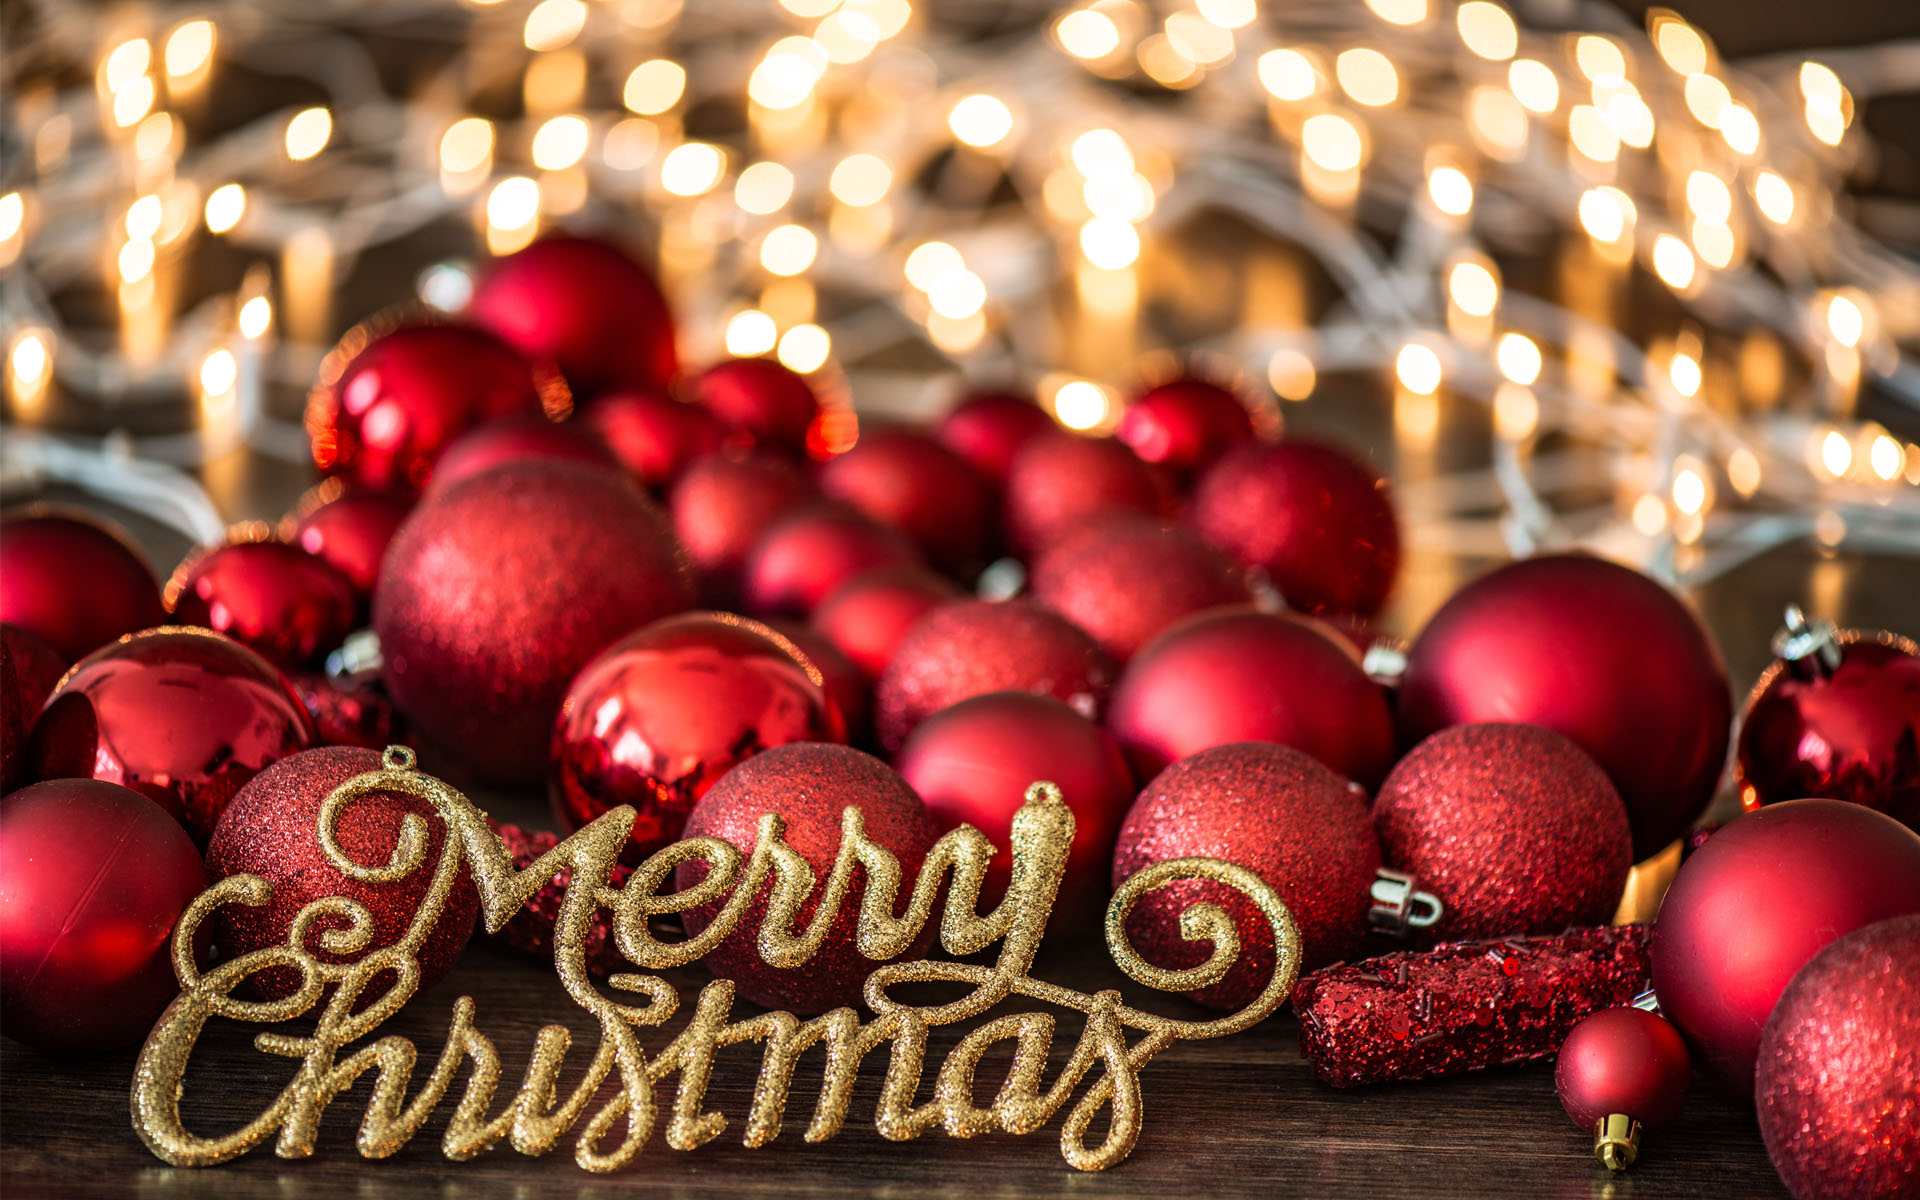 top 10 best merry christmas wallpapers 2016-17 [hd download]